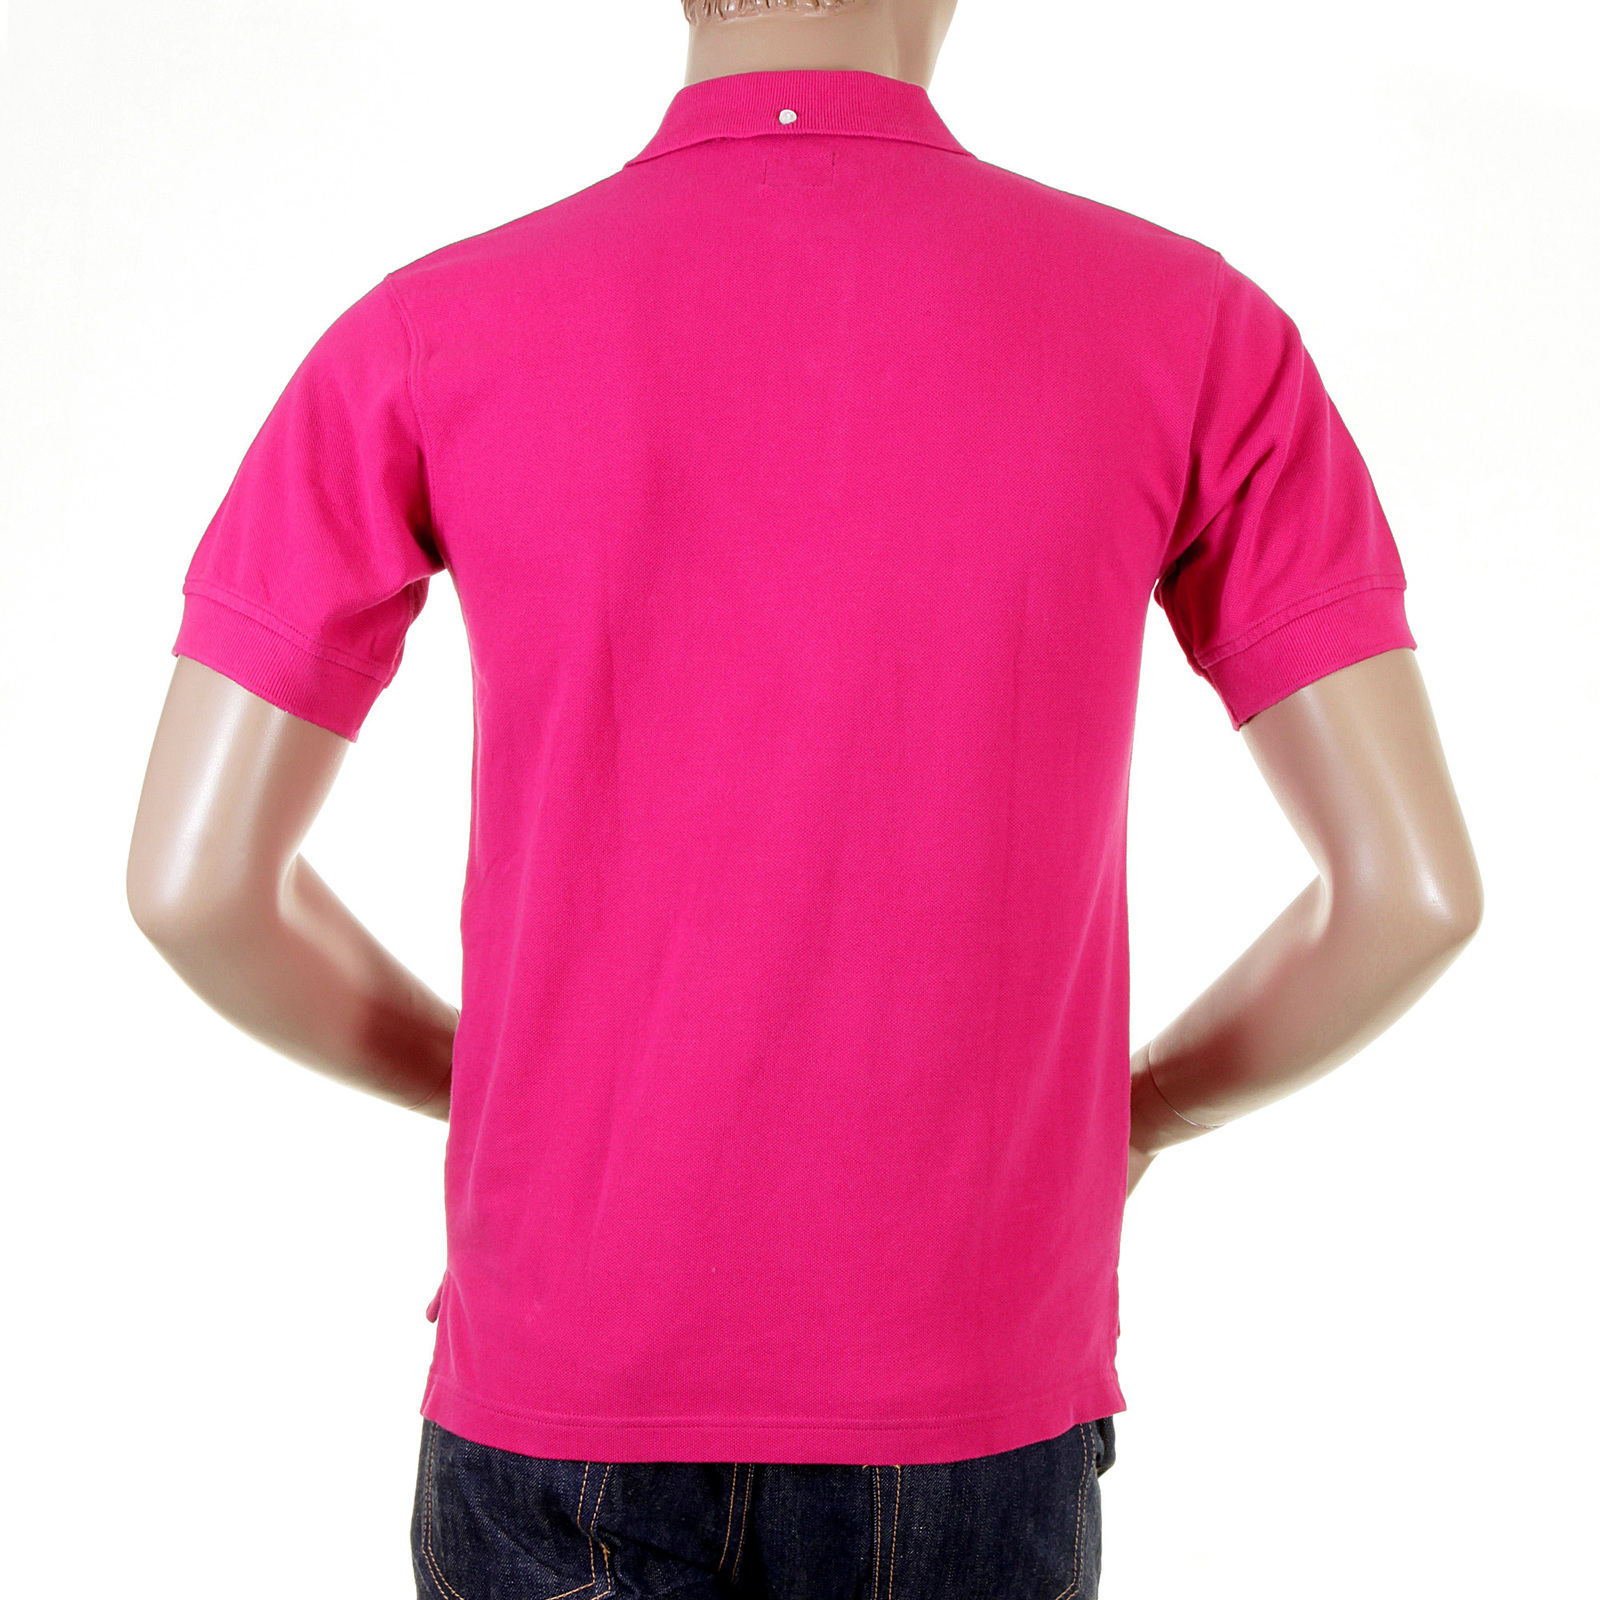 Wear The Charm Of The Pink Polo Shirt By Evisu Now